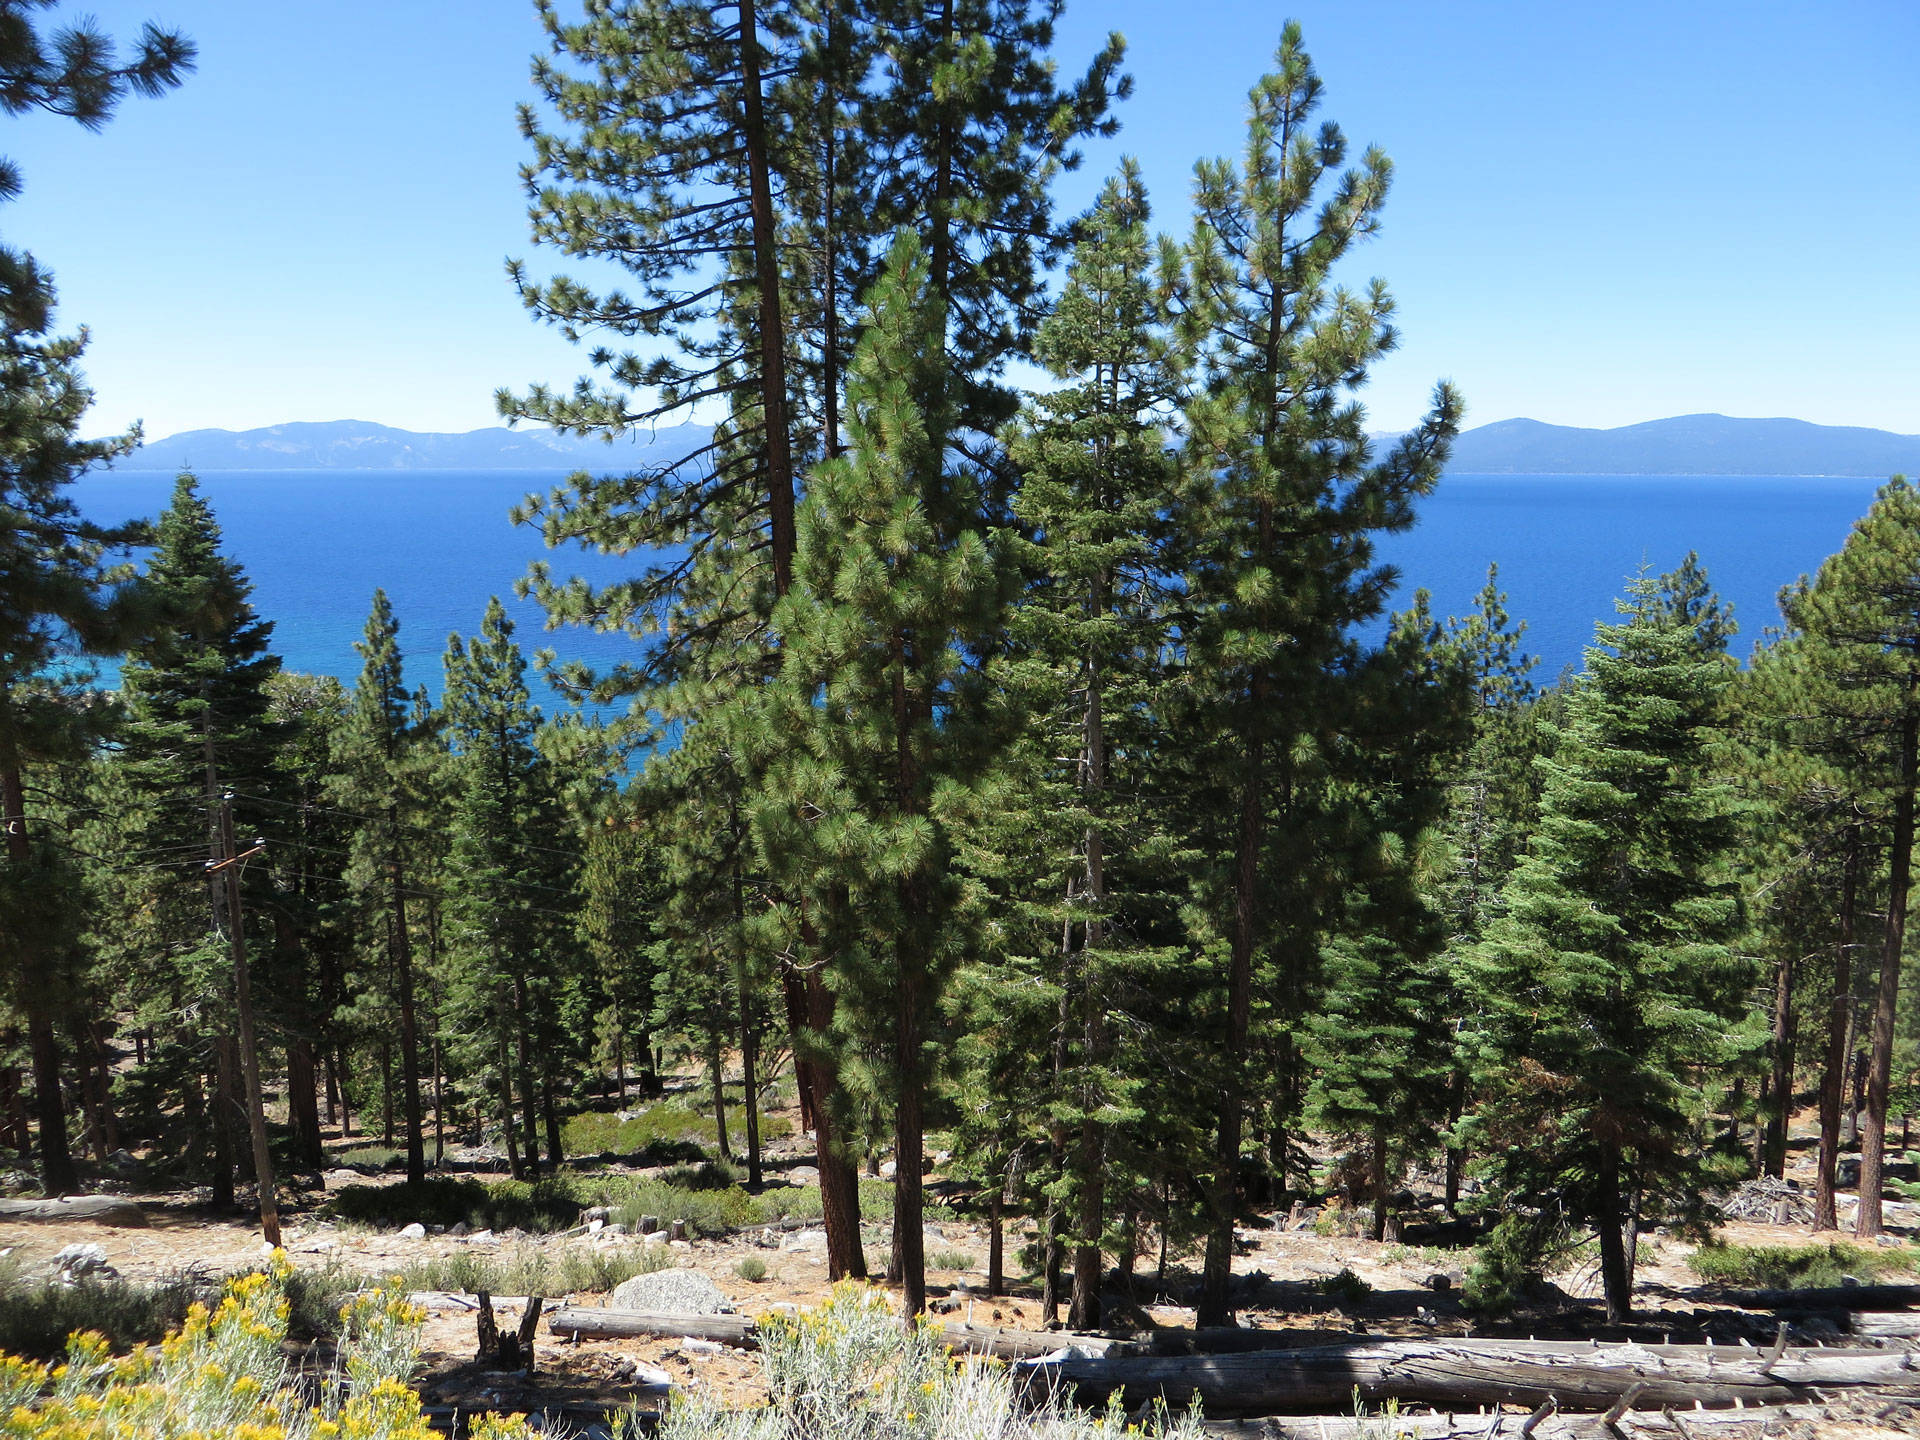 Some cap-and-trade proceeds are going to forest and watershed restoration around Lake Tahoe, which is expected to create multiple benefits: Clearing crowded forests allows more healthy trees to grow, take in and store carbon in the ground and stabilize soils that hold water. Ken Lund/Flickr